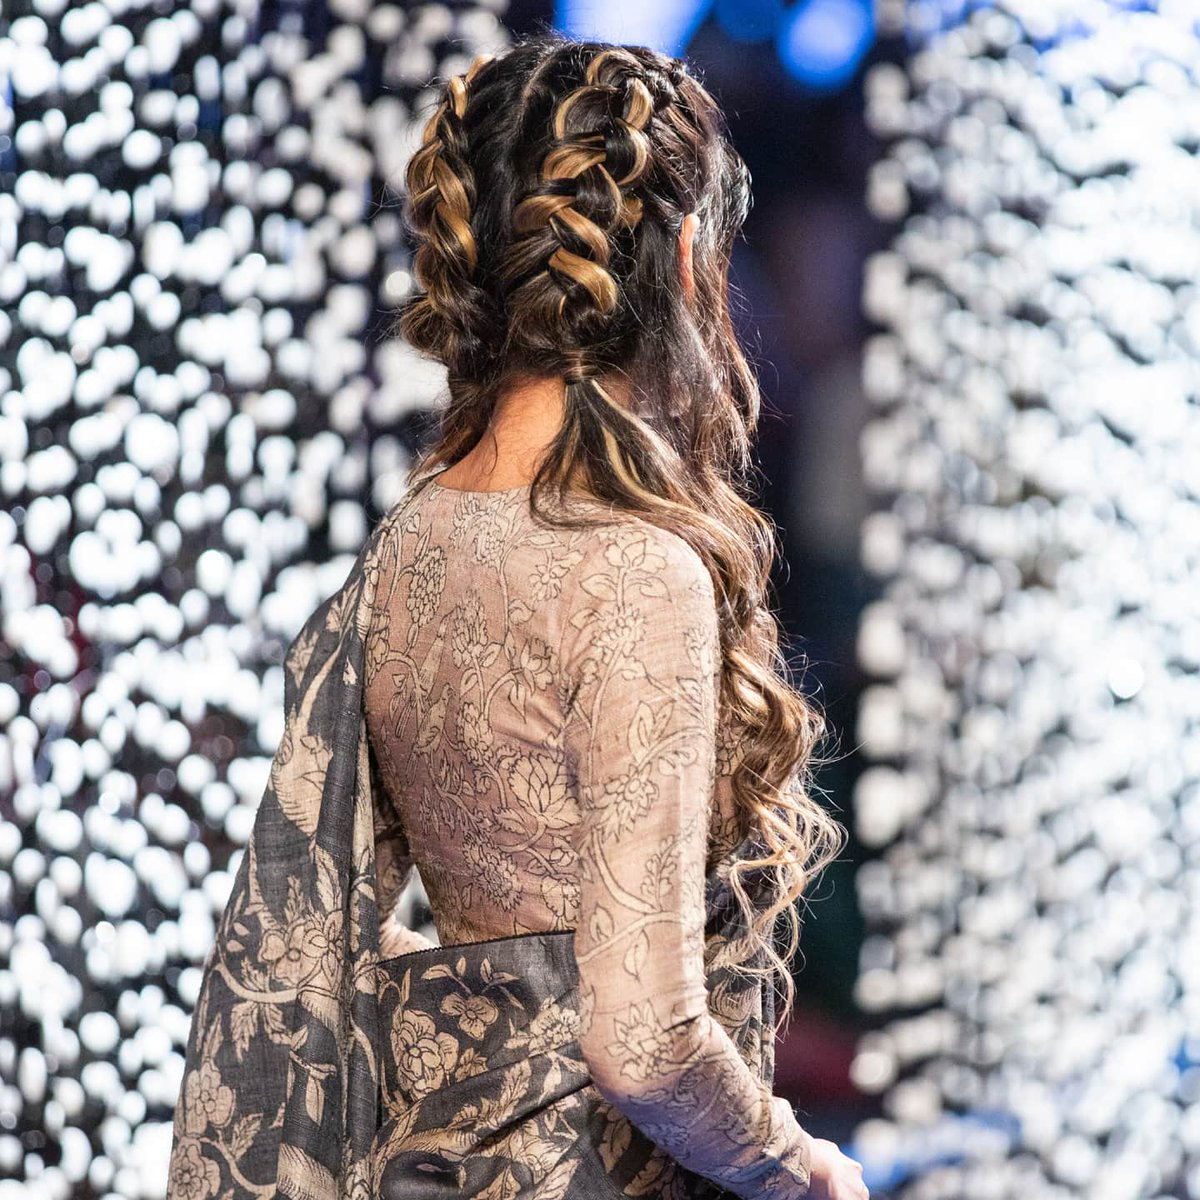 It was a braid affair on the ramp that complemented our spice blends inspired hair colors. This gorgeous shade and more will be available soon at your nearest Lakmé Salon. Stay Tuned!  . . #LakmeSalonGaramMasala #LakmeSalonXGaurang #LakmeFashionWeek pic.twitter.com/4RolDbQvKn